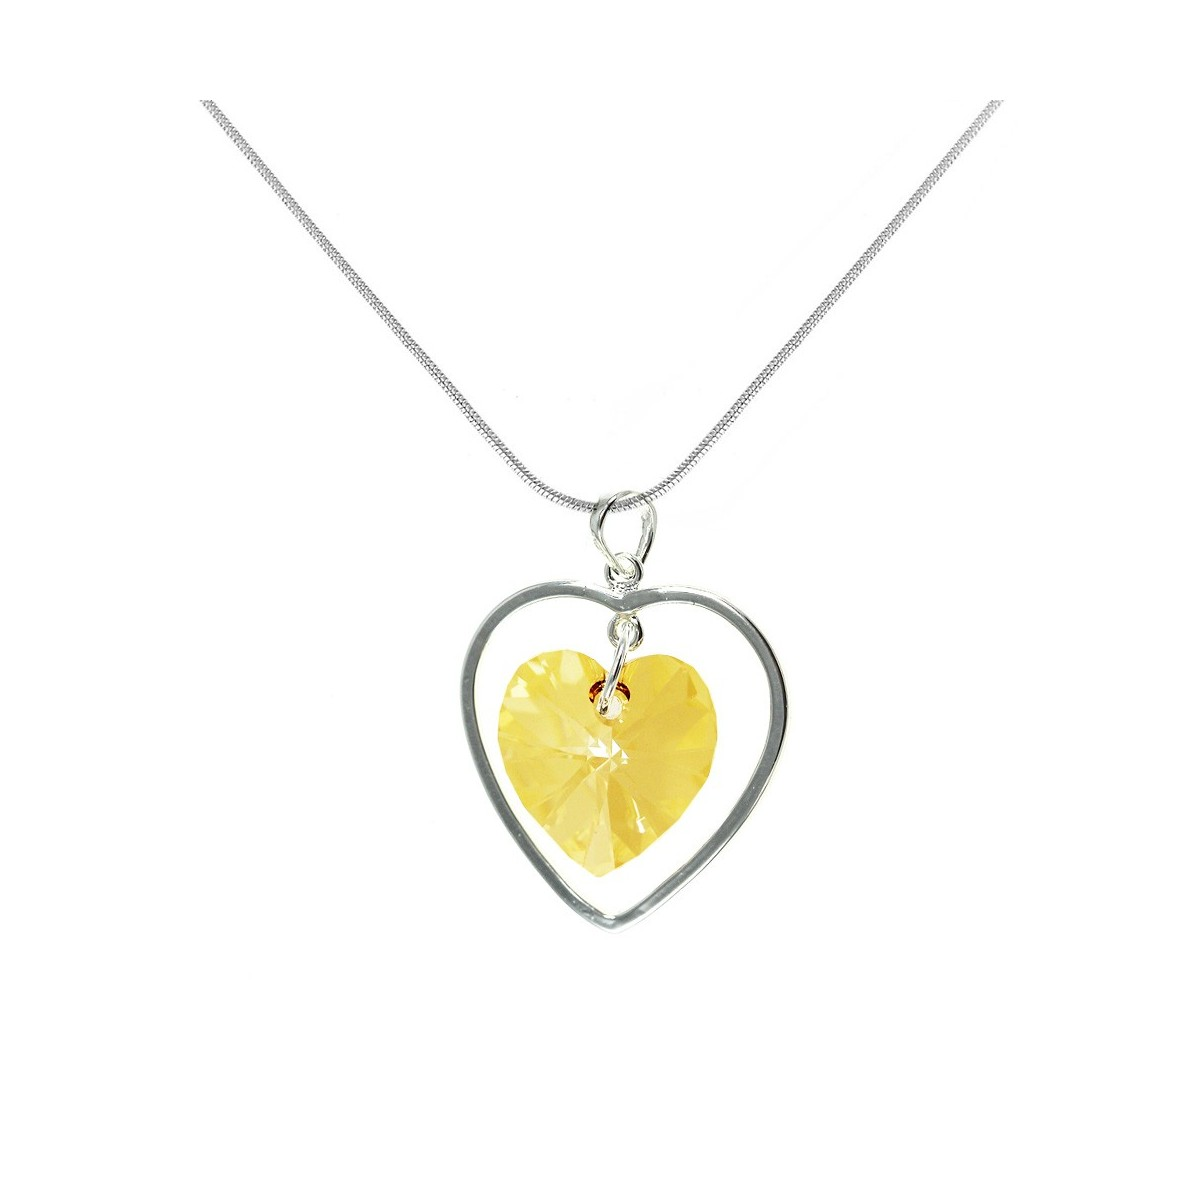 Collier argenté et coeur jaune So Charm made with crystal from Swarovski